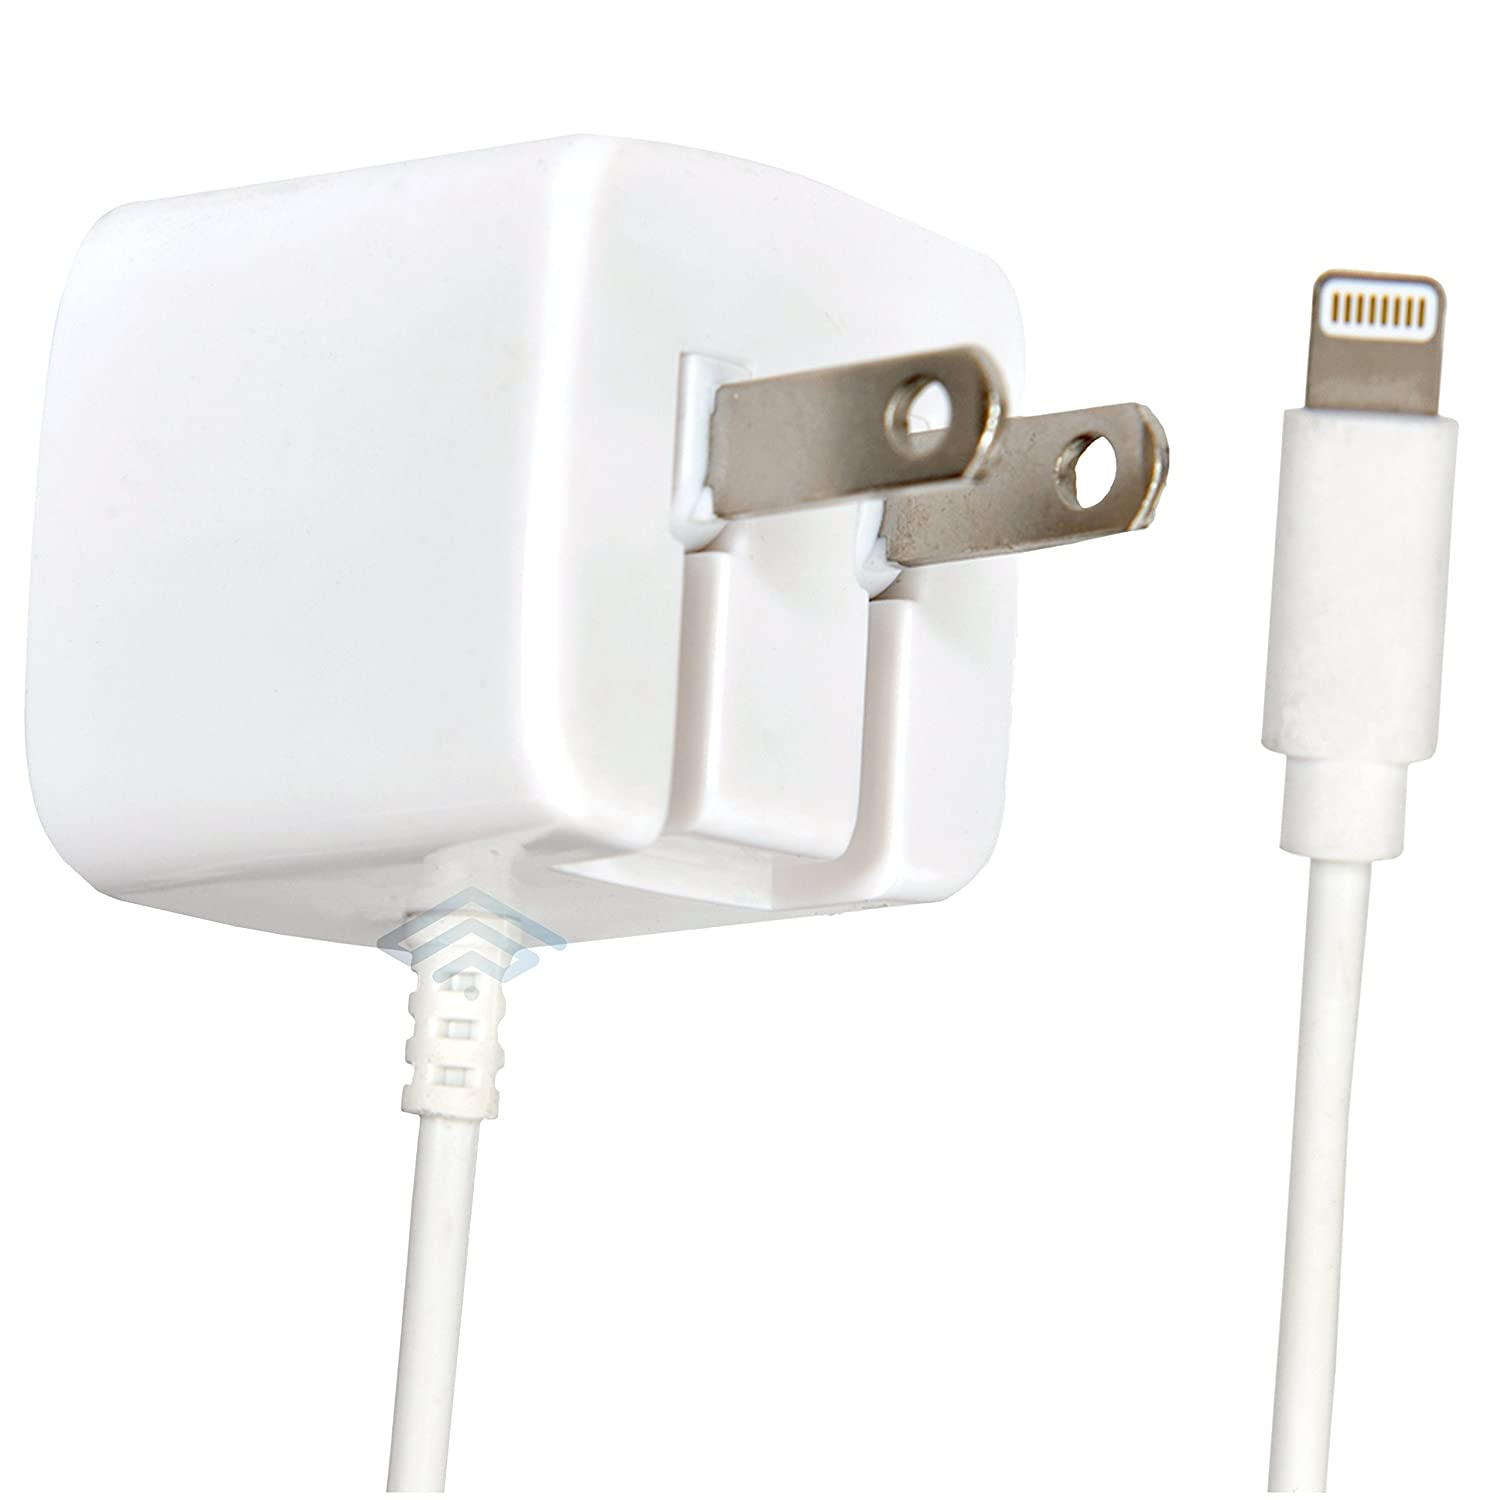 Apple Certified iPhone Lightning Charger , Wall Plug , for iPhone 11 Pro XS  Max X XR XS 8 Plus 7 6S 6 5S 5 5C SE , Pins Fold , 2.1a Rapid Power , Take